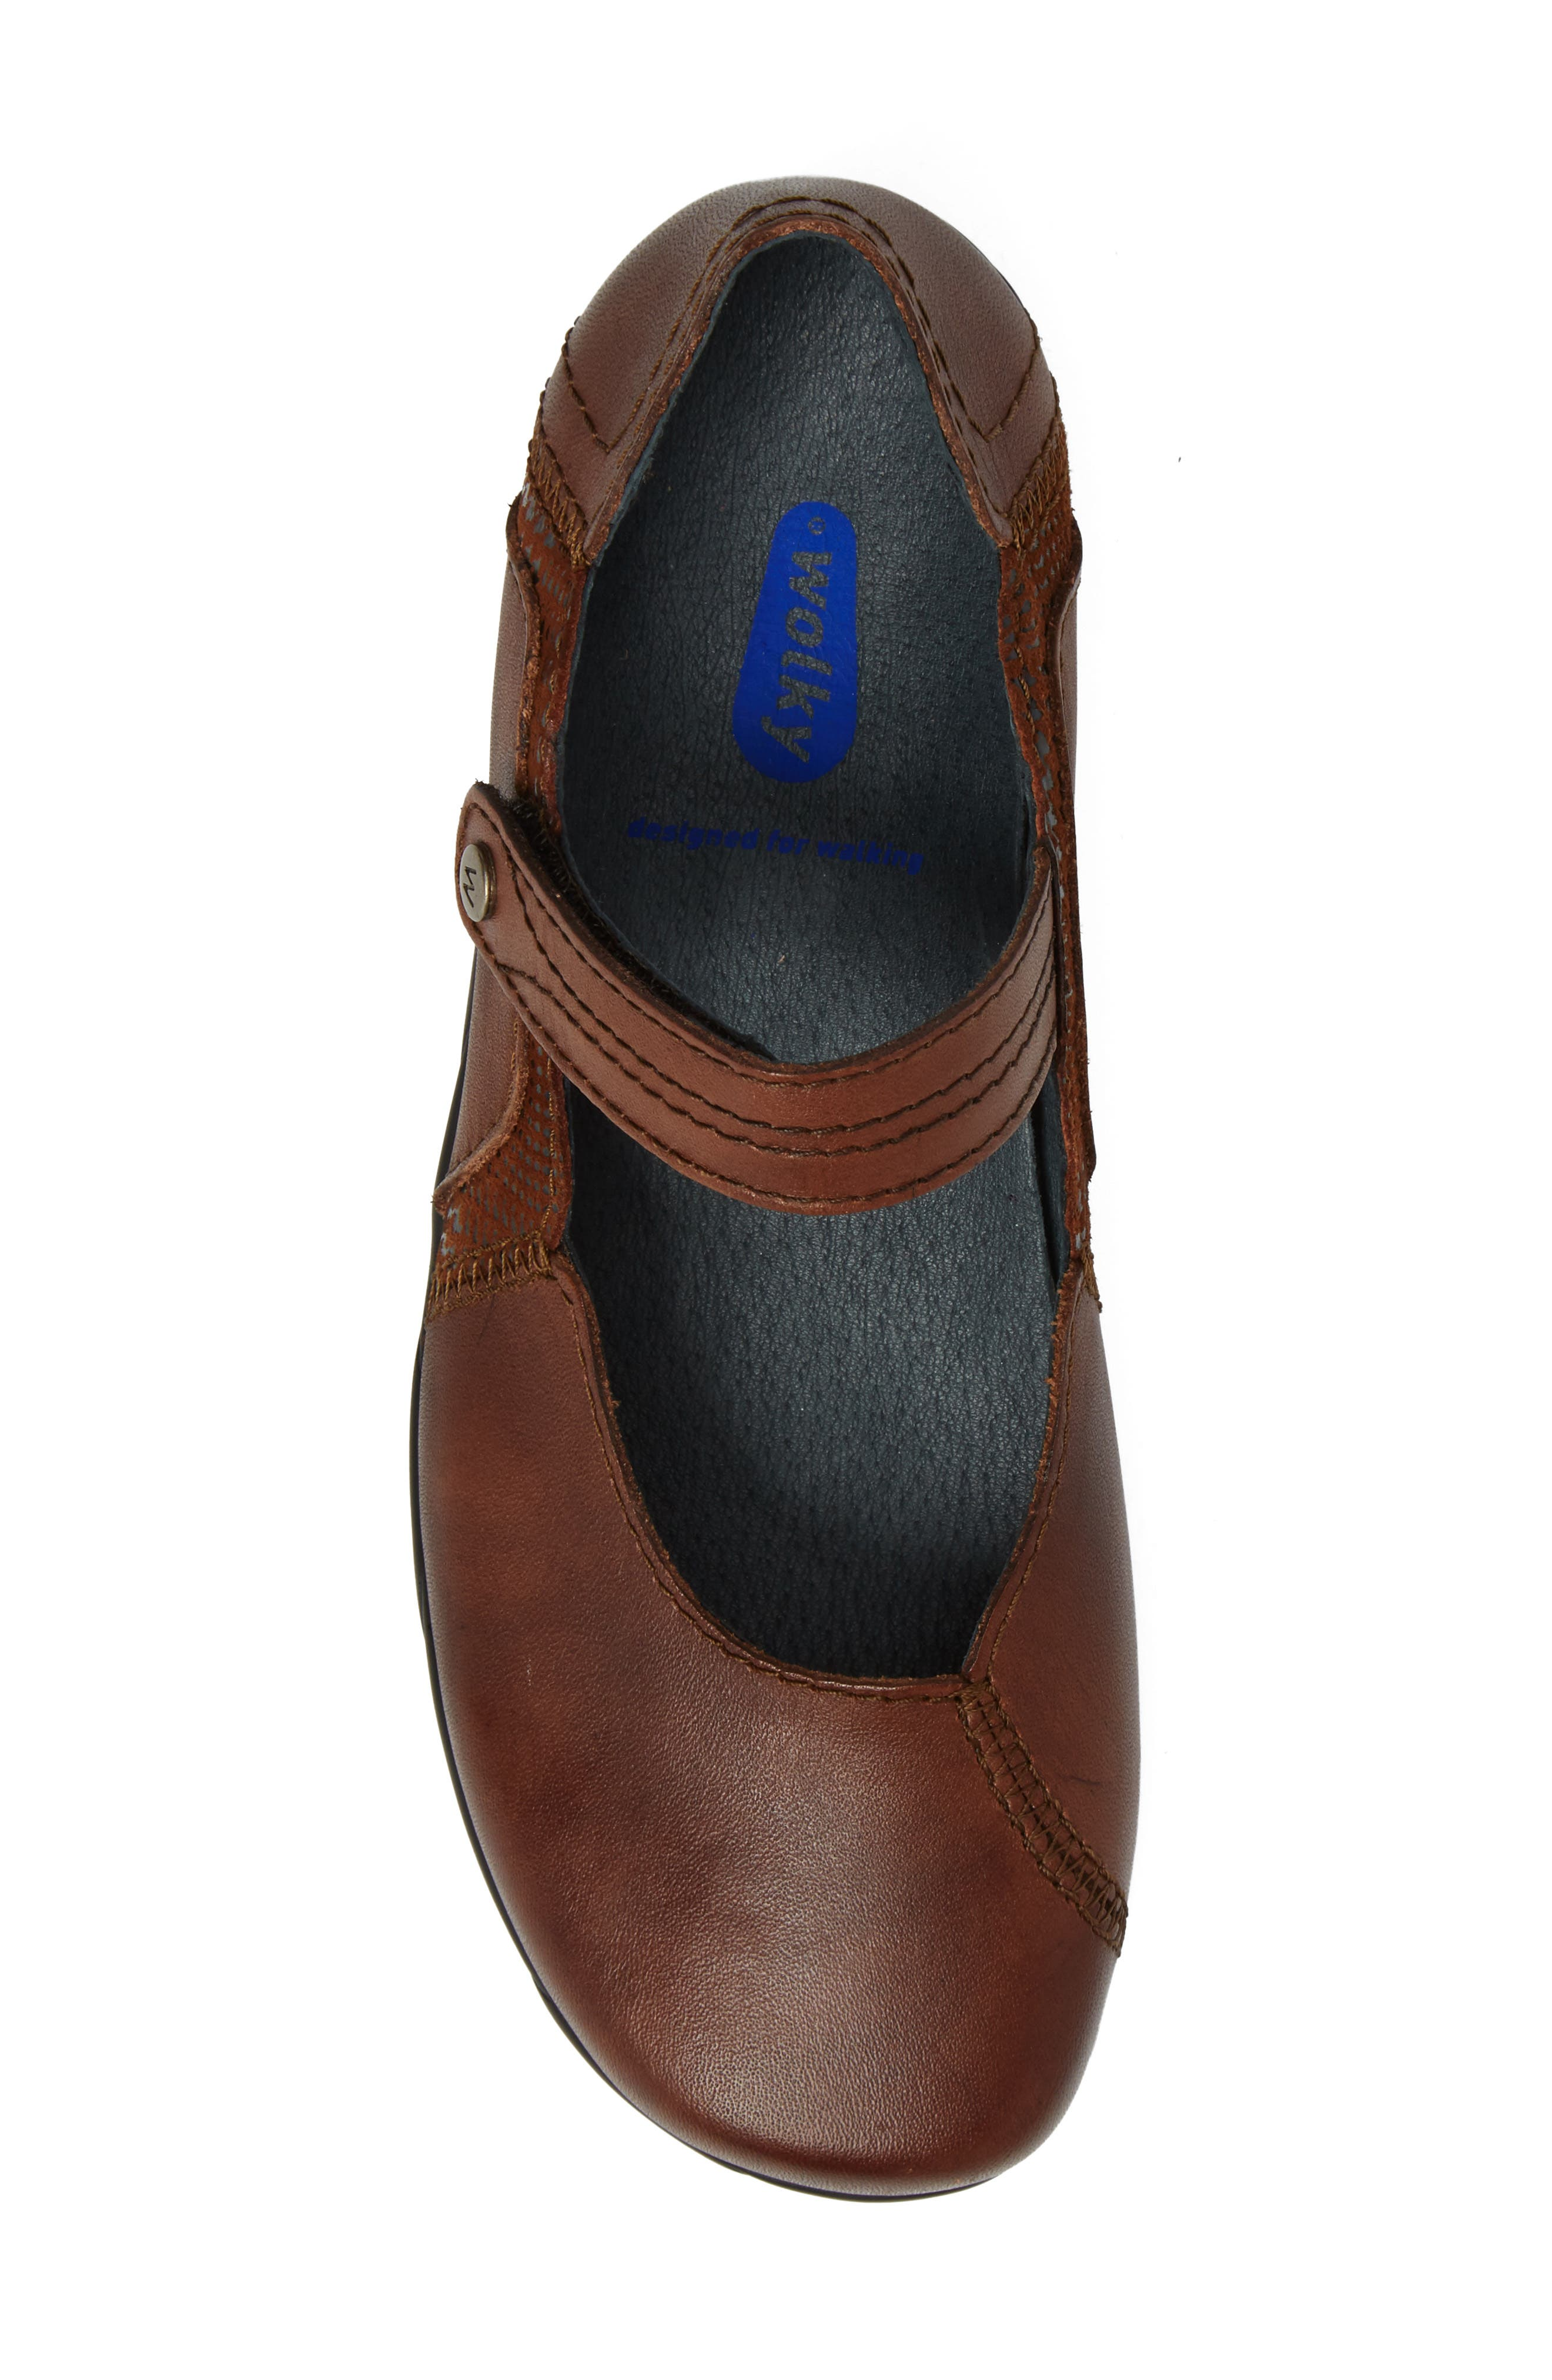 Gila Mary-Jane Flat,                             Alternate thumbnail 5, color,                             Cognac Leather